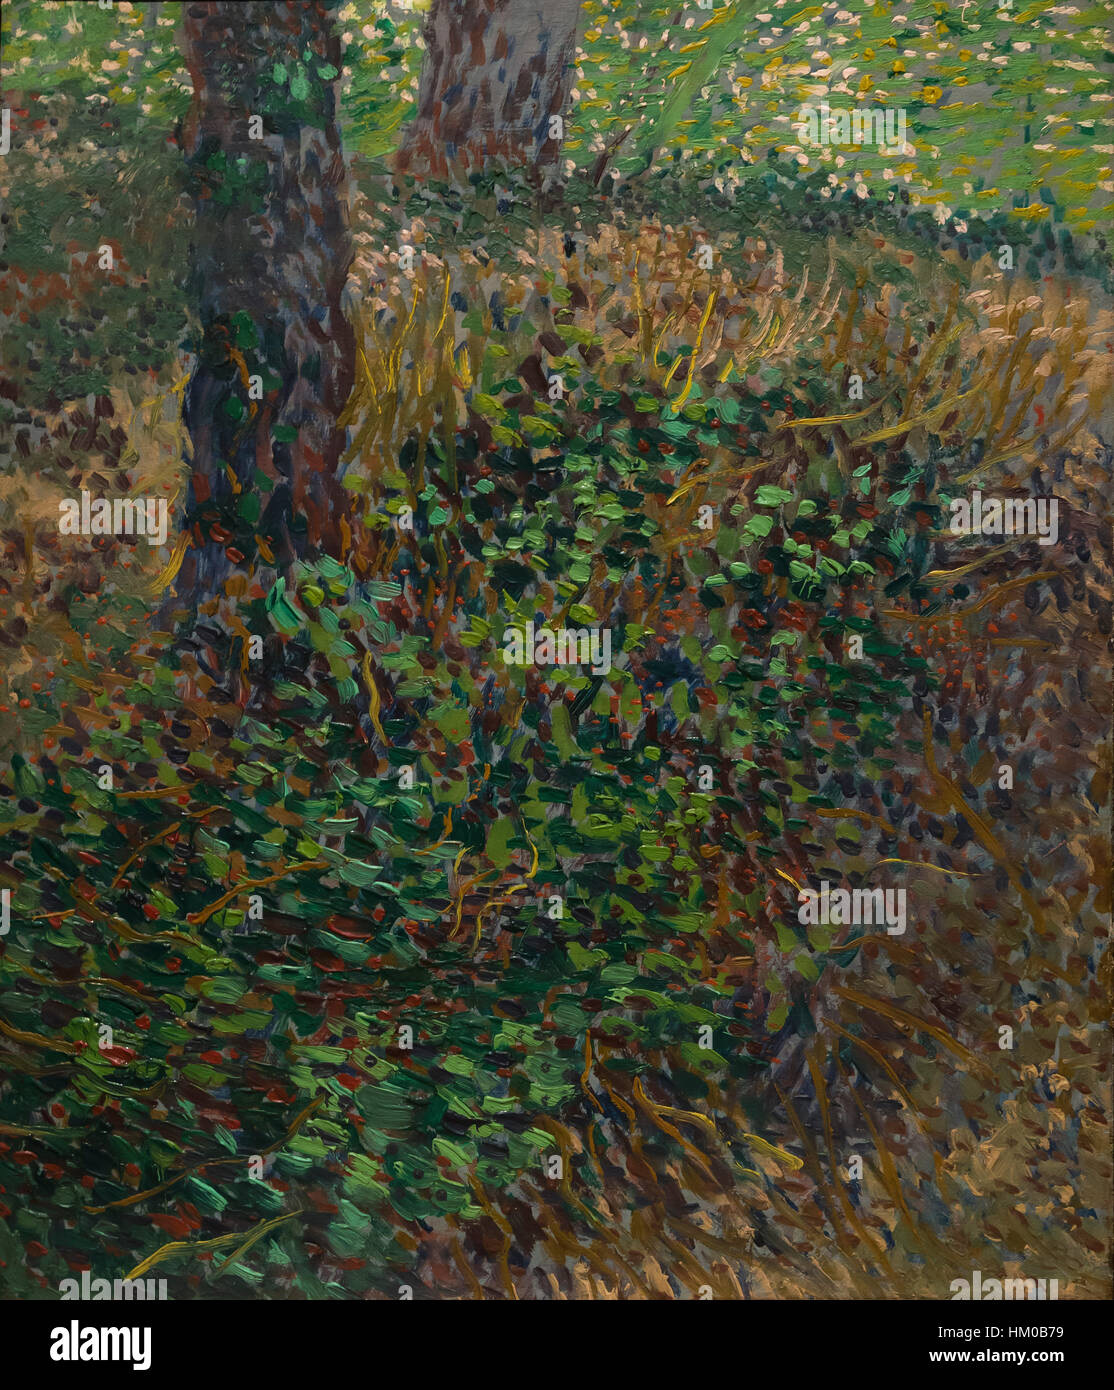 Undergrowth, by Vincent van Gogh, 1887, oil on canvas, Rijksmuseum, Amsterdam, Netherlands, Europe, Stock Photo